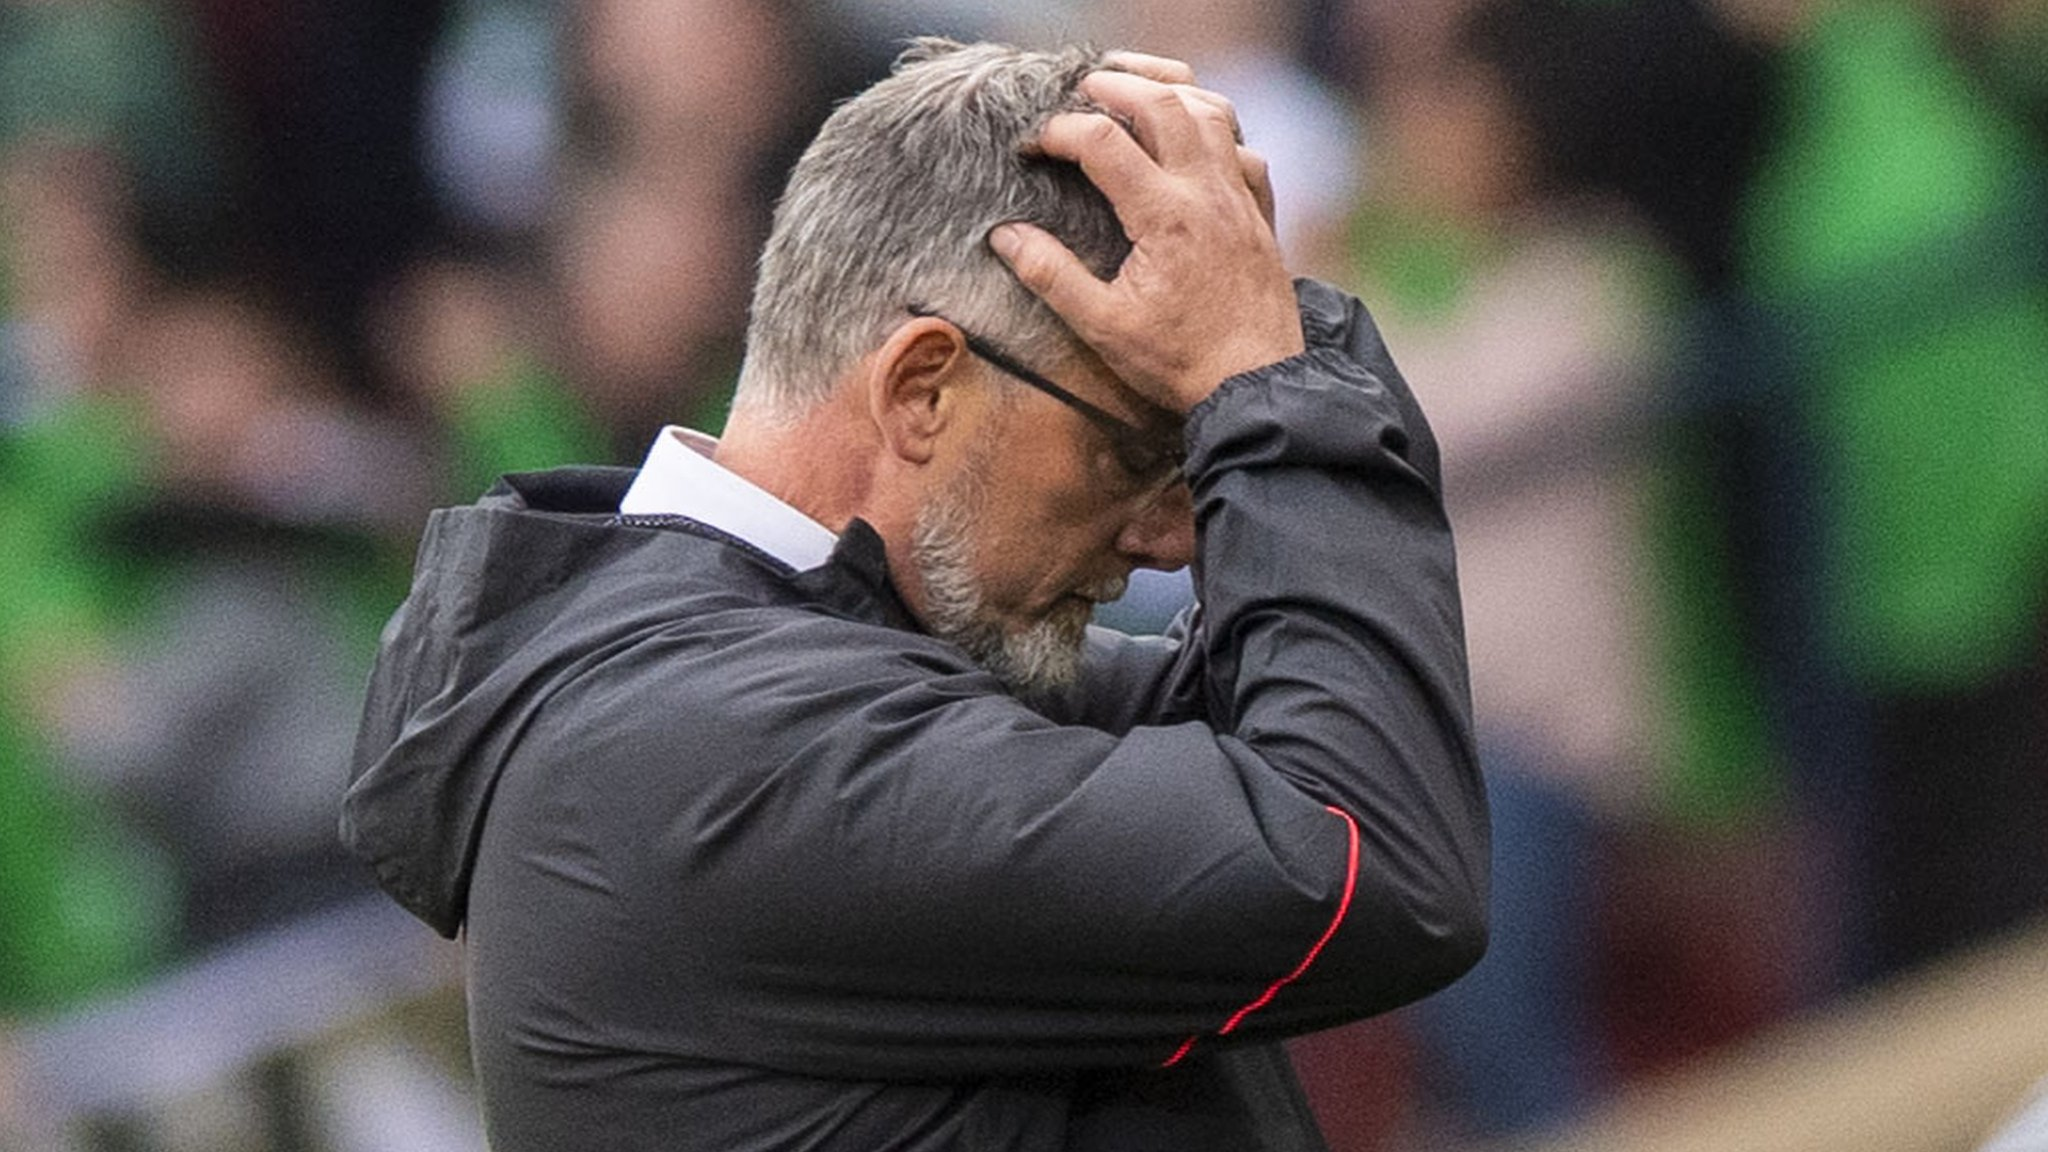 Hearts 1-2 Celtic: Craig Levein says concentration lapses cost team in Scottish Cup final loss